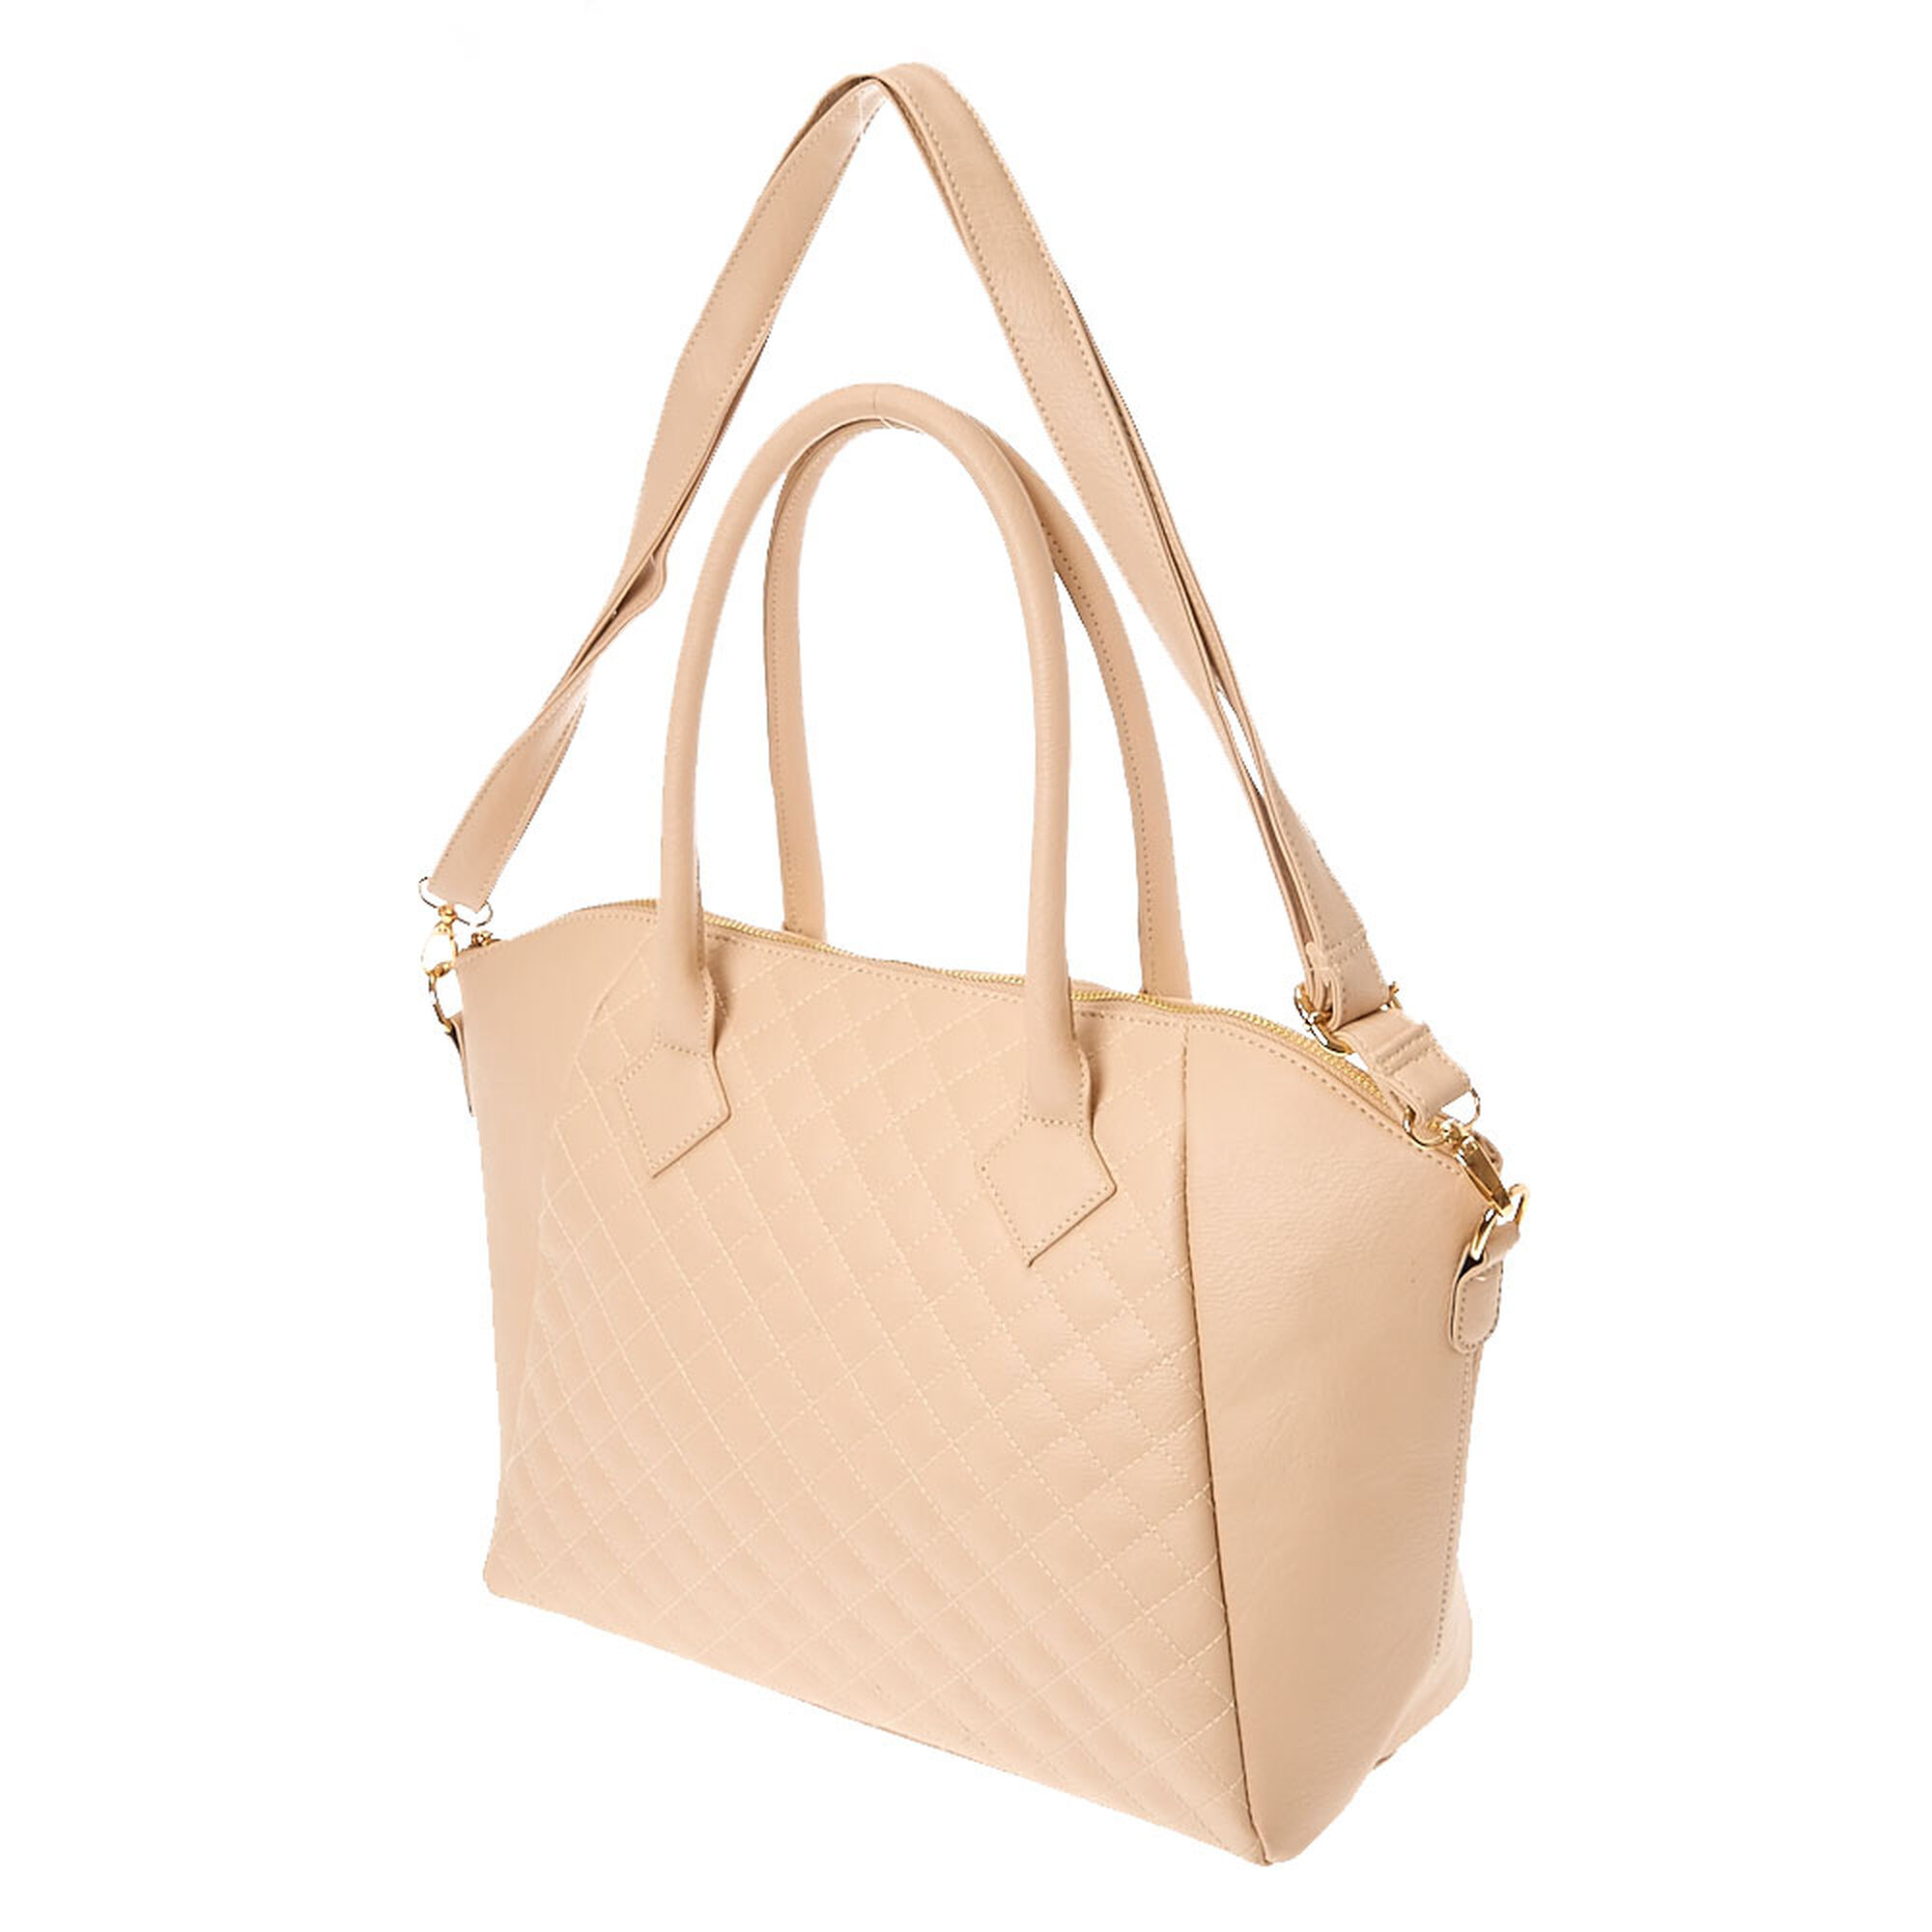 Tan Quilted Faux Leather Tote Bag | Icing US : quilted faux leather tote - Adamdwight.com